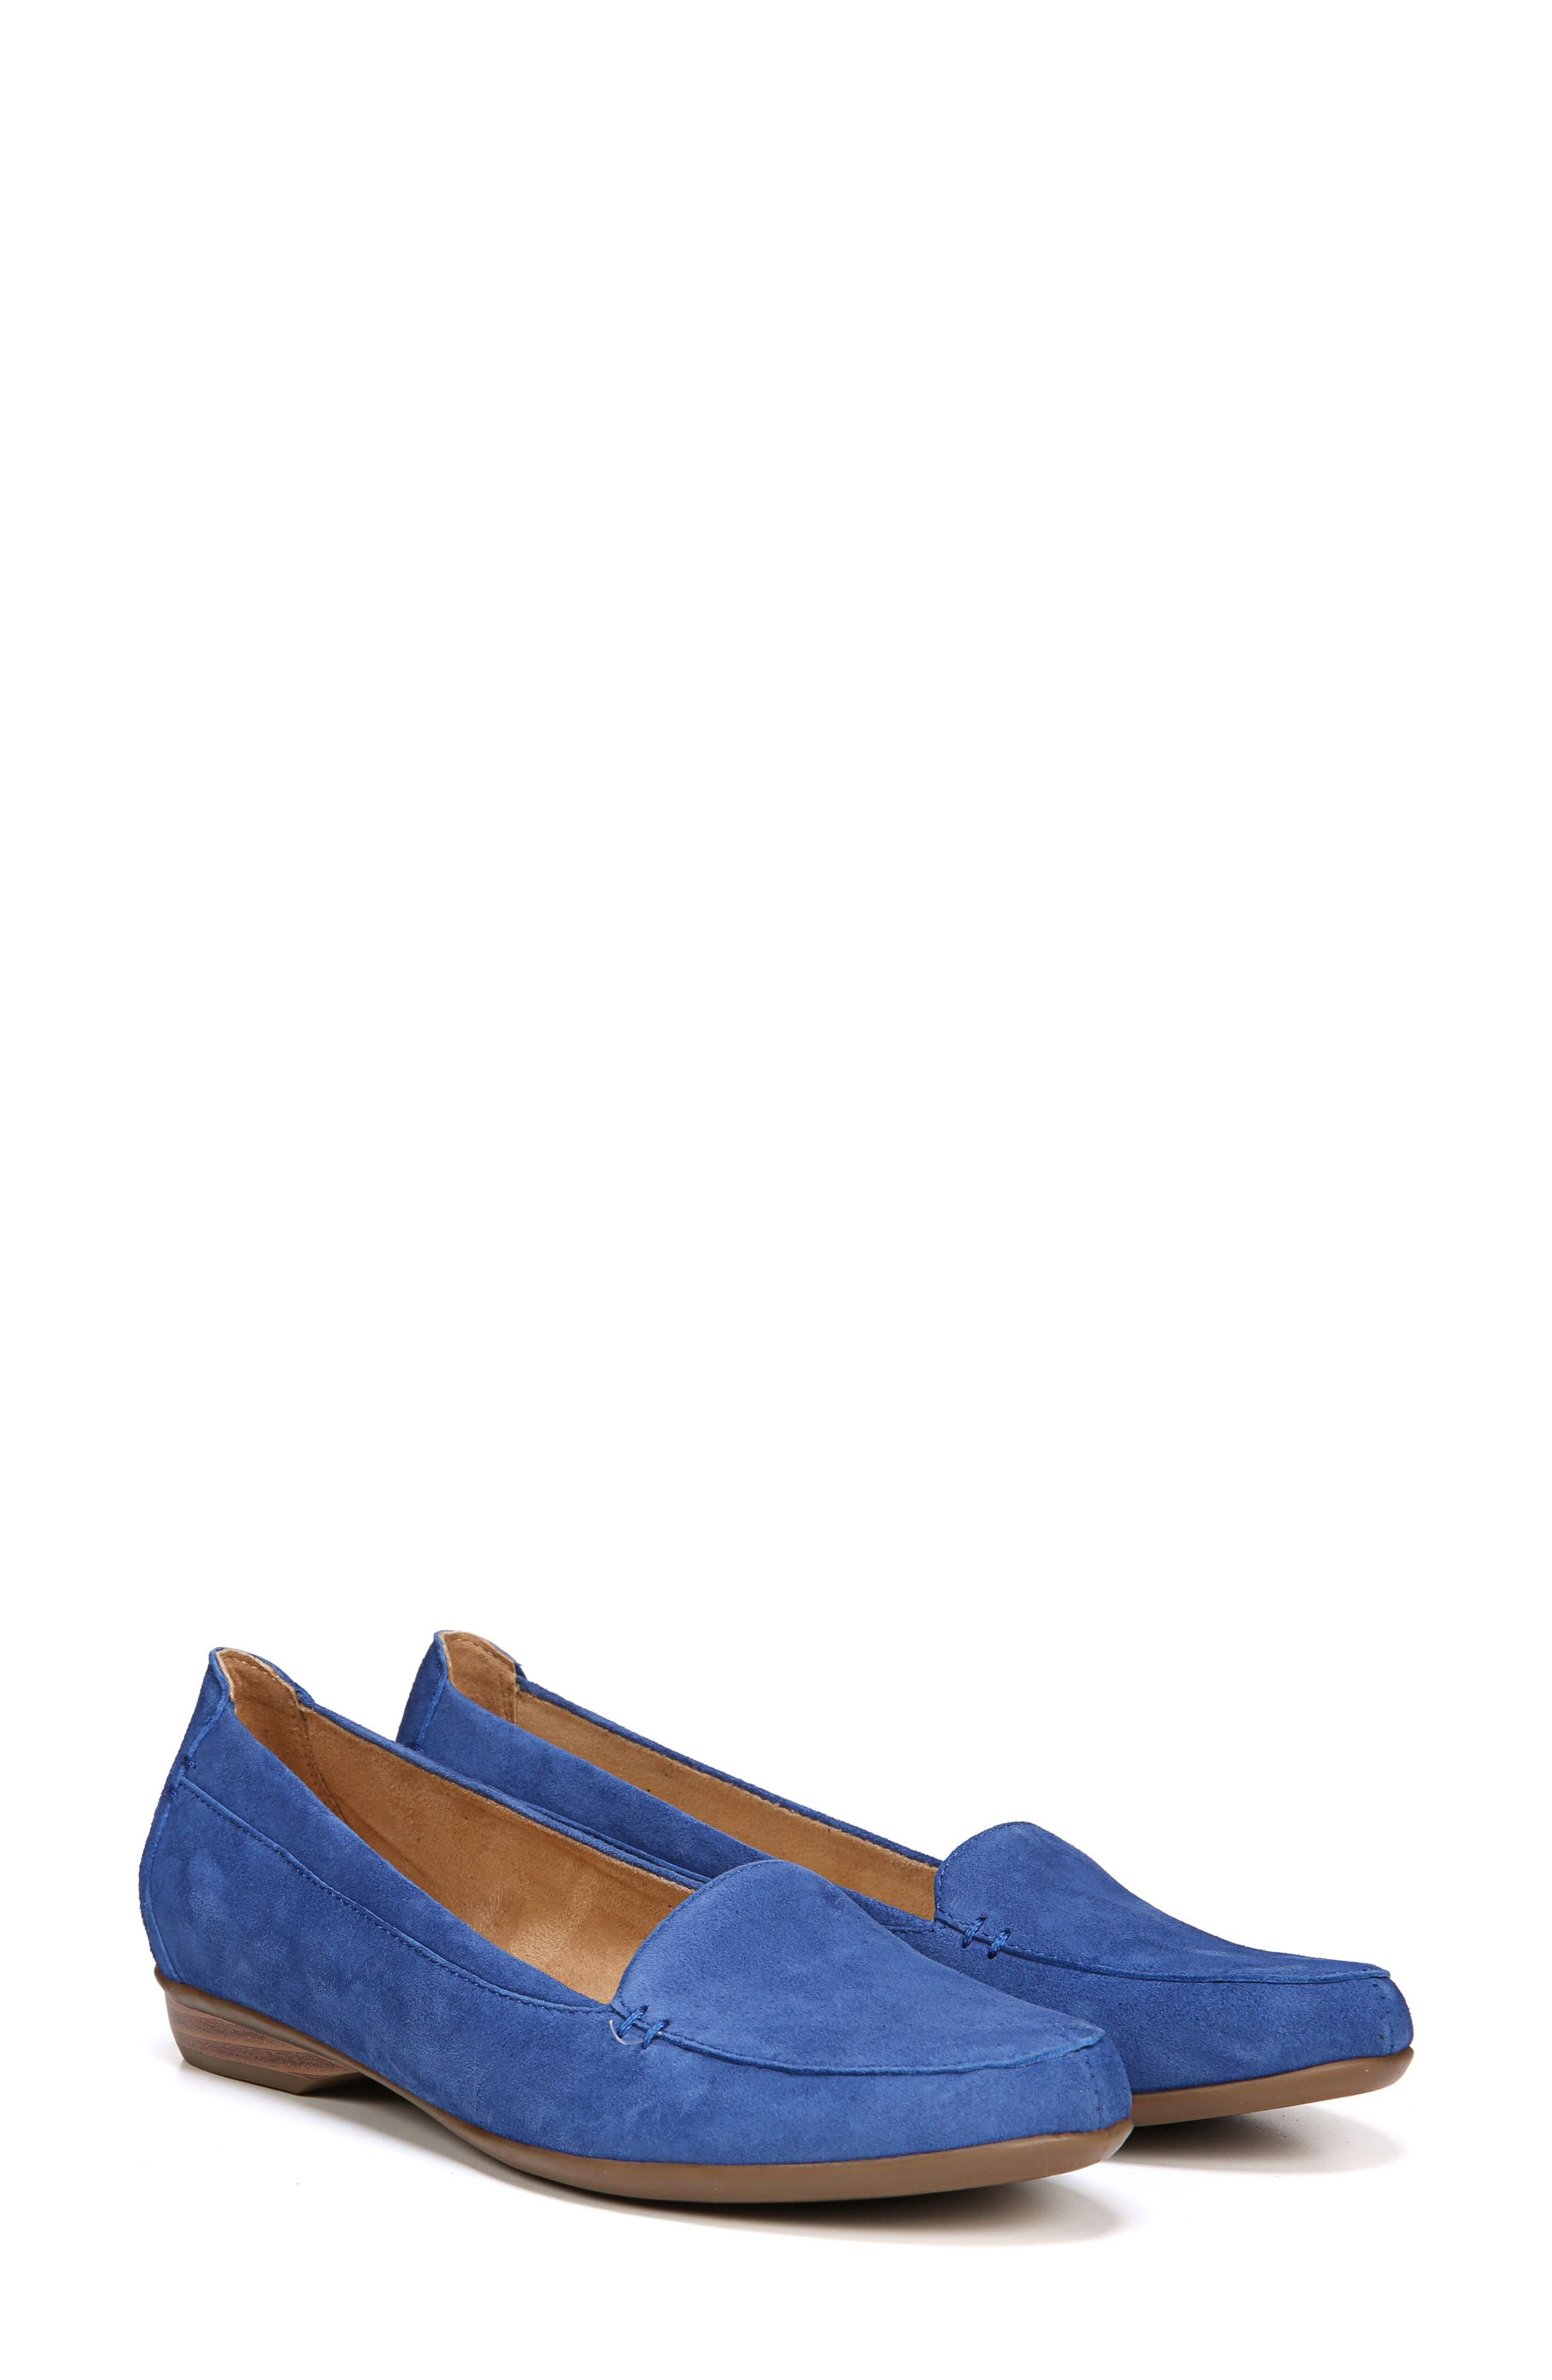 NATURALIZER, 'Saban' Leather Loafer, Alternate thumbnail 7, color, FRENCH BLUE SUEDE